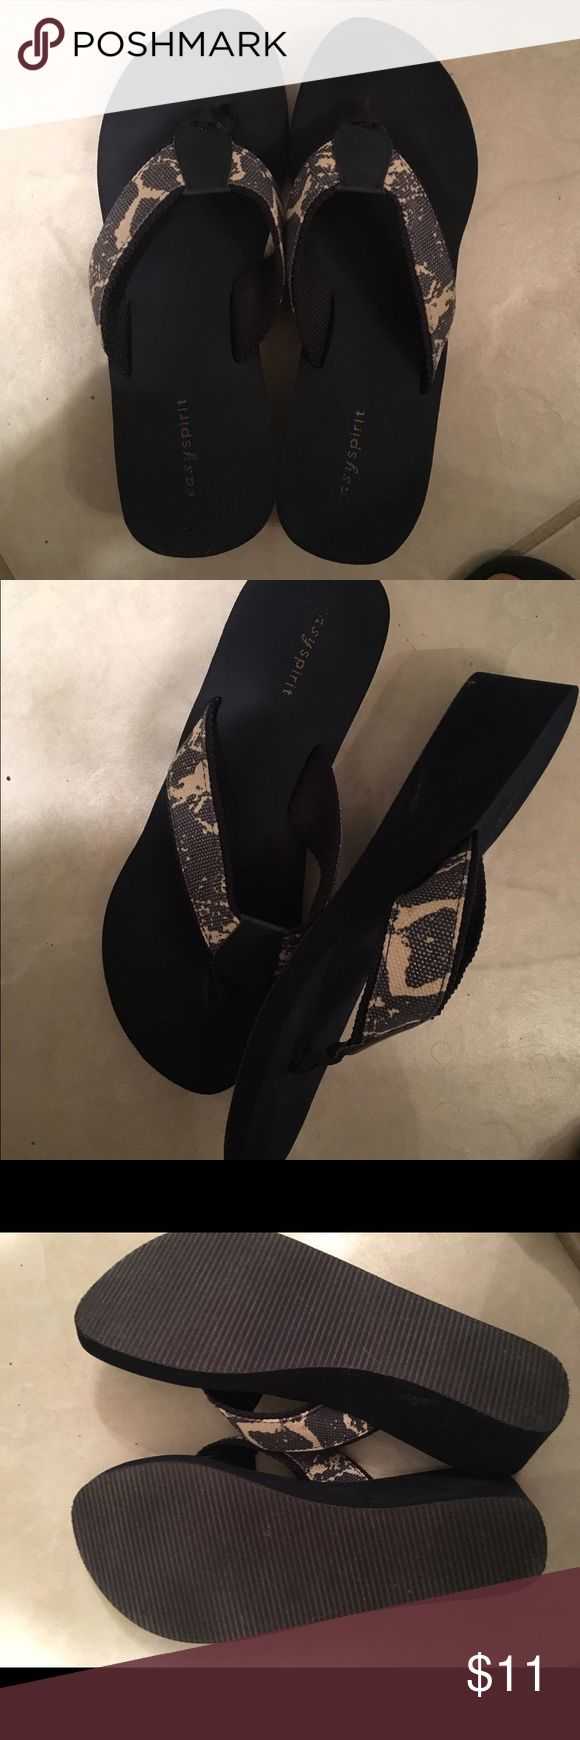 Navy and Beige Wedge Flip Flops Make your outfit cool and walk comfortably with these navy and beige flip flops by easy spirit.  The deign has a touch of gold. Easy Spirit Shoes Sandals